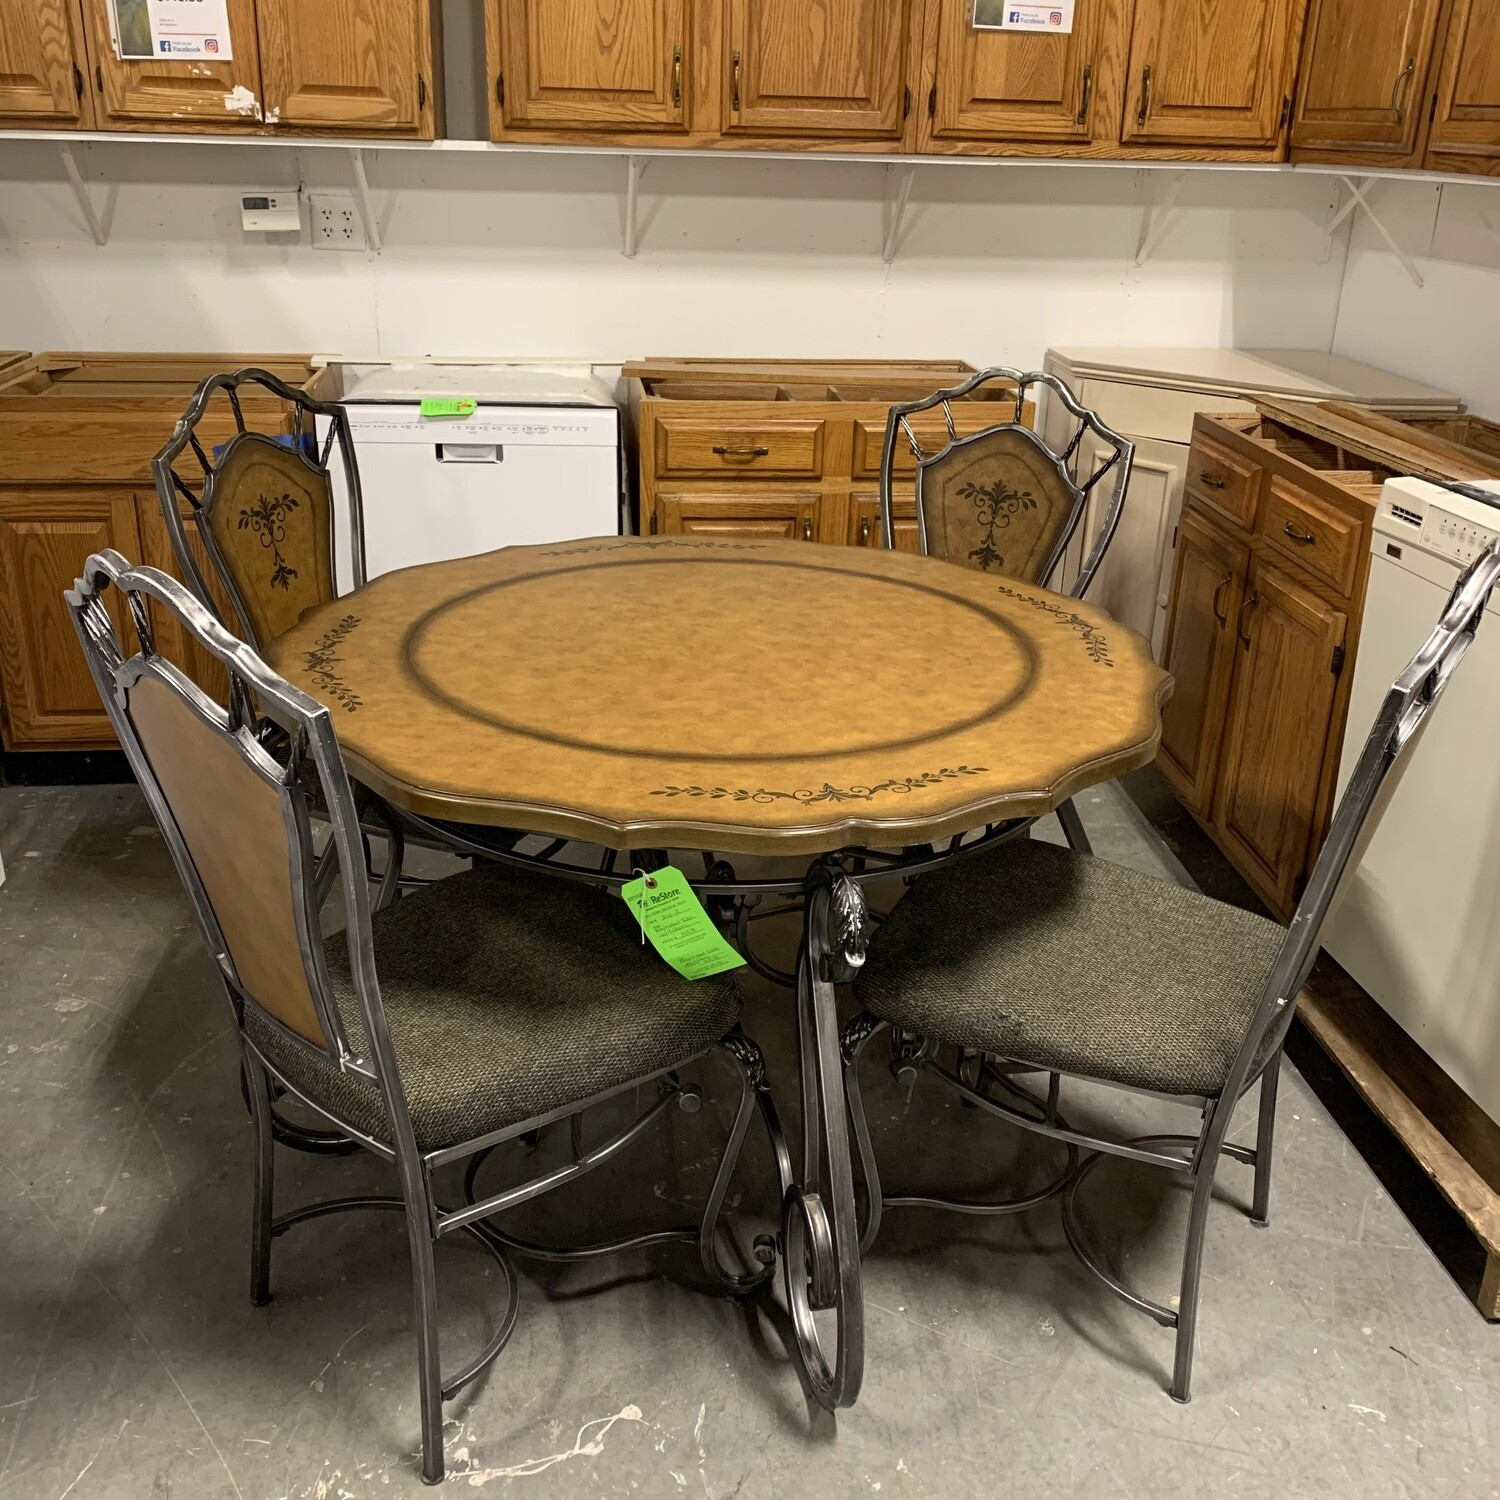 Metal & Wood Table With 4 Chairs